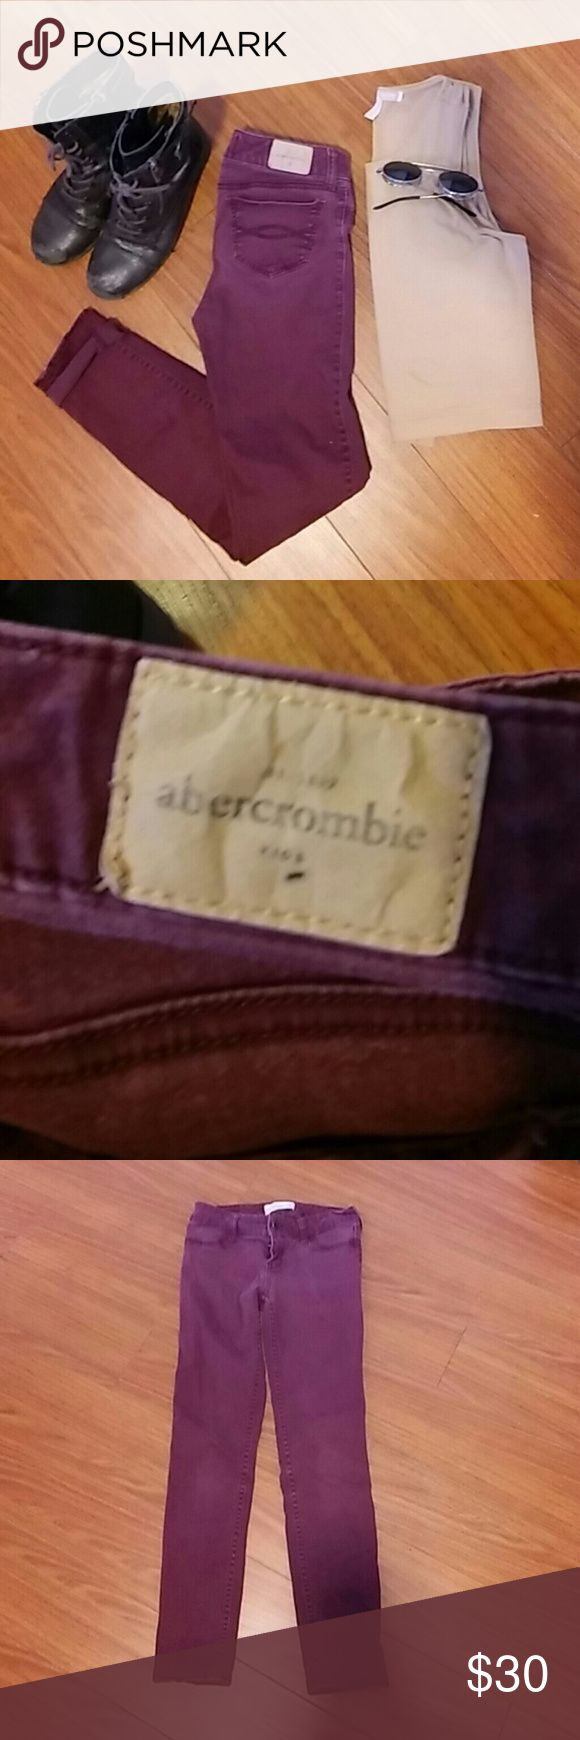 Abercrombie jeans These marroon colored abercrombie kids jeans are a great pop of color to any outfit. They are slightly worn in but good condition. Size 14 slim. Ankle length and a tight fit. Abercrombie & Fitch Jeans Skinny